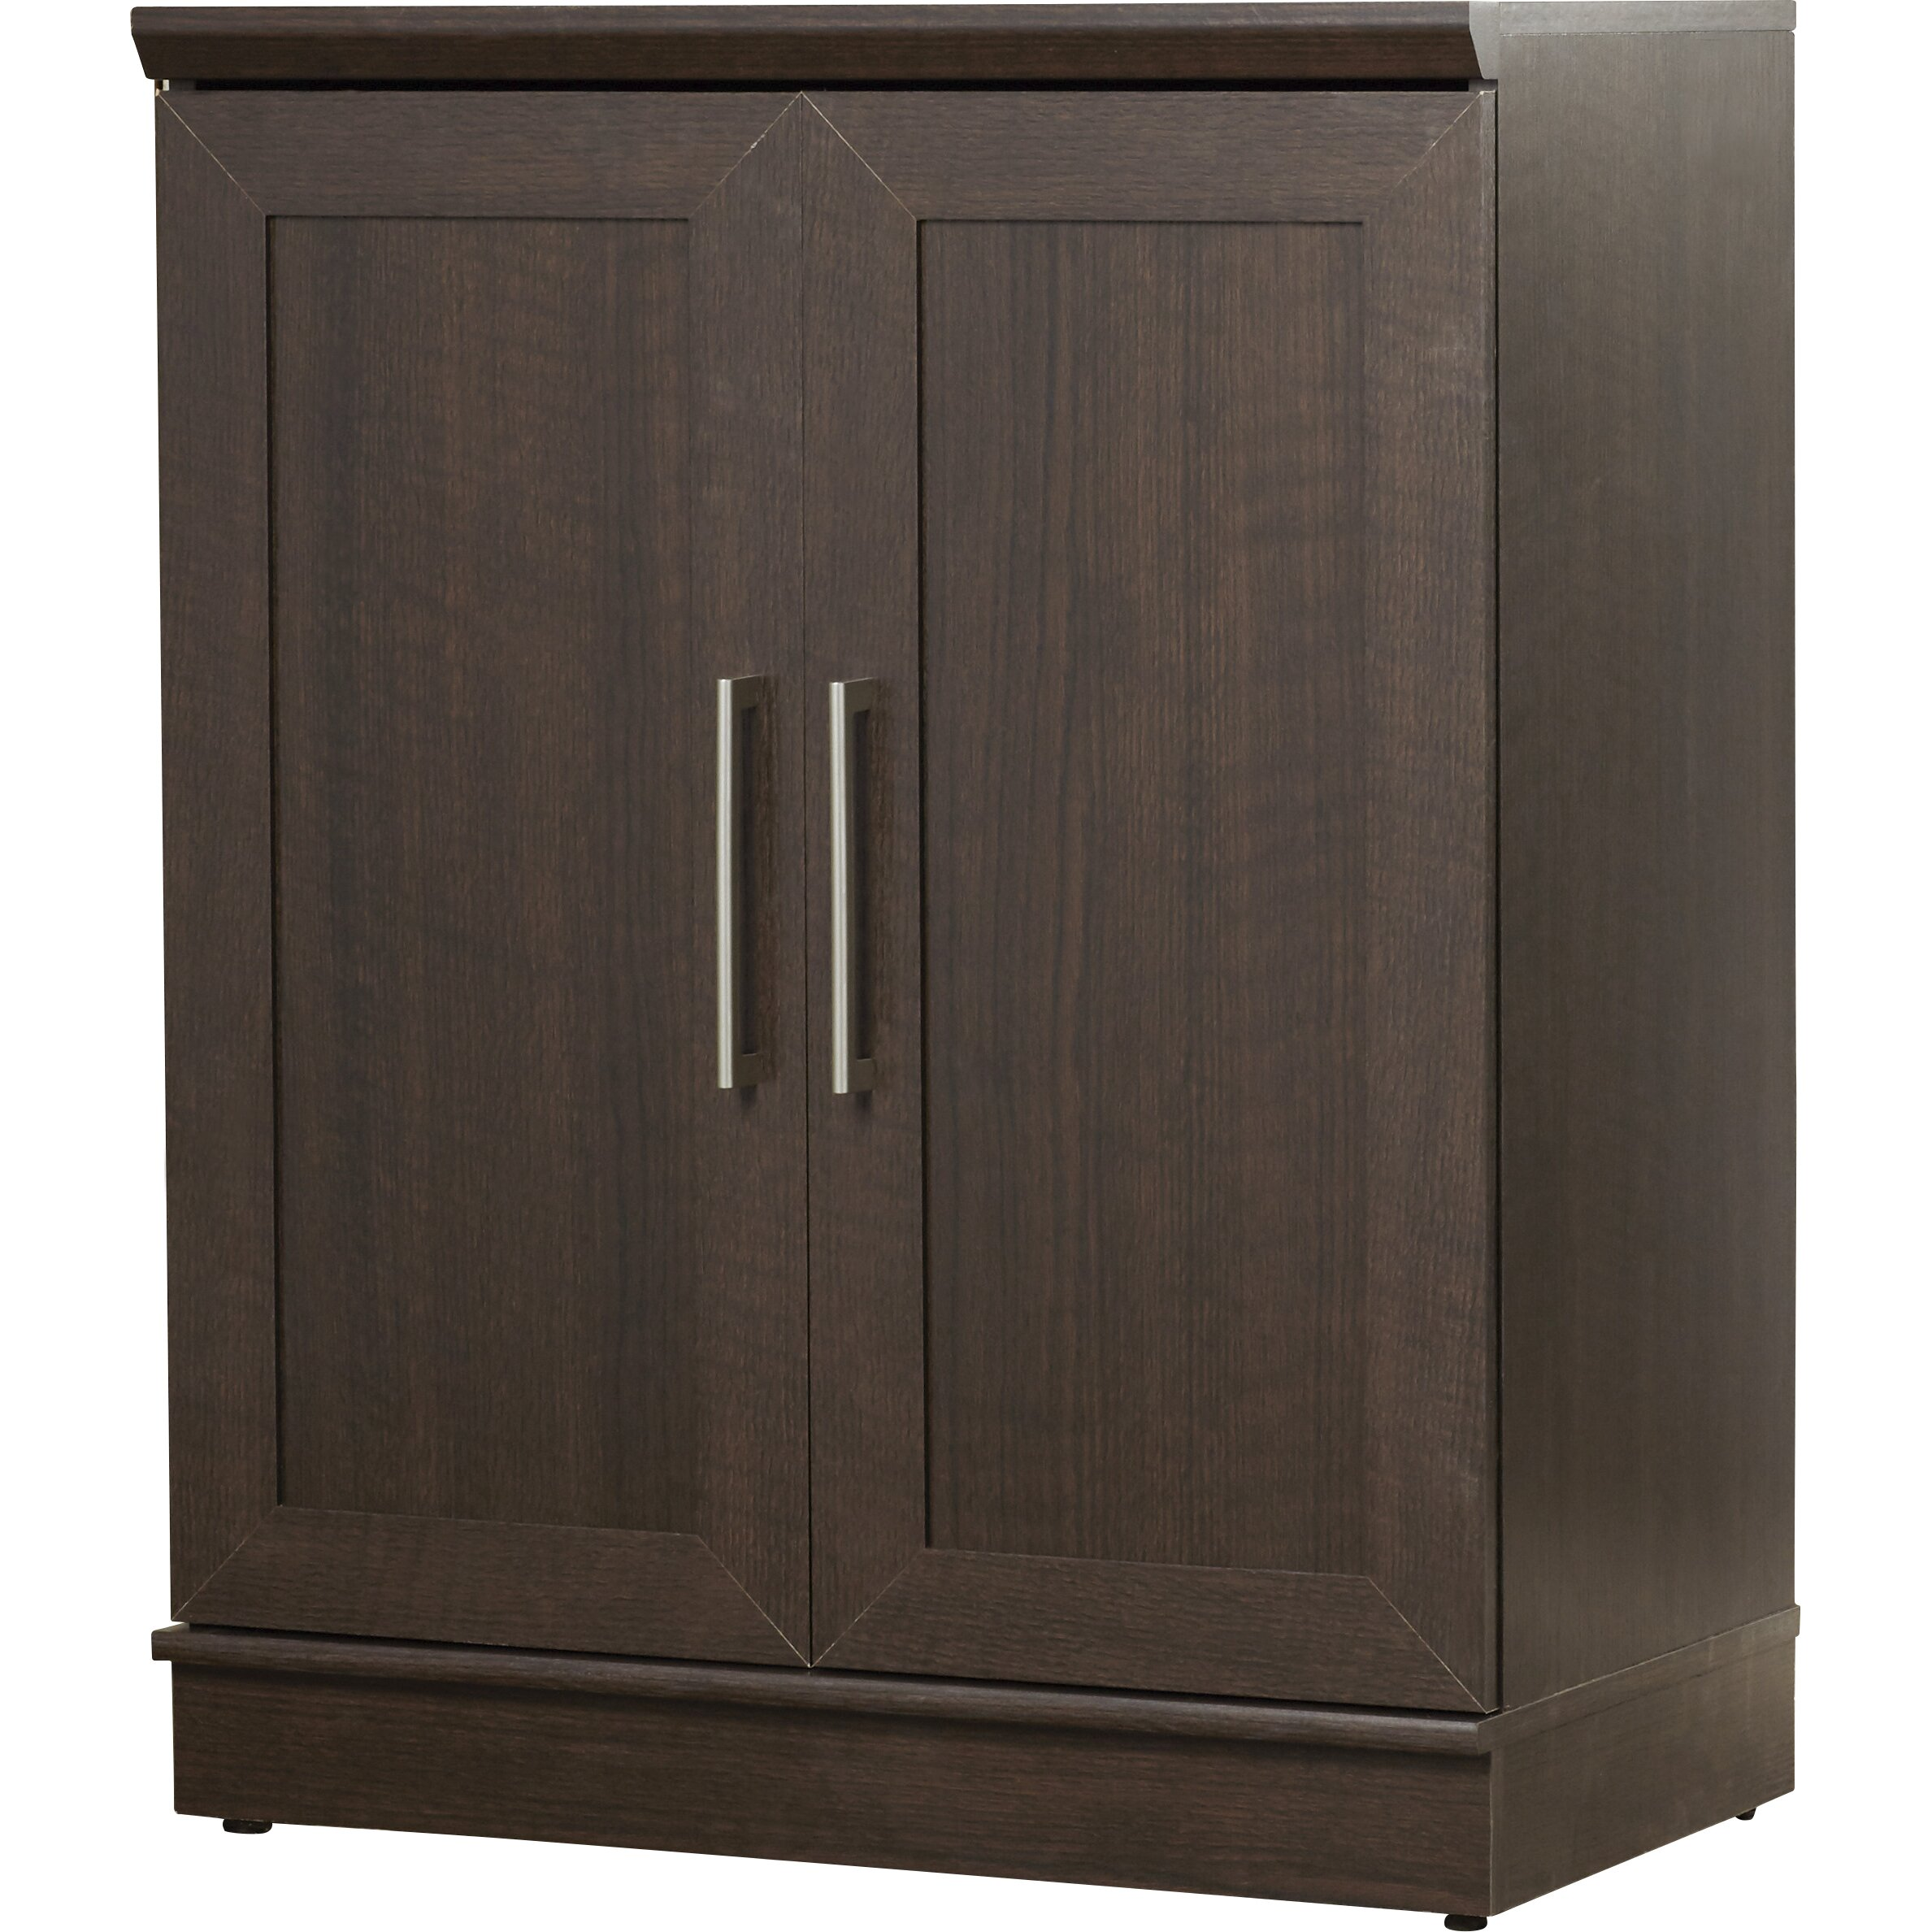 Sauder homeplus 2 door storage cabinet reviews wayfair for 1 door storage cabinet